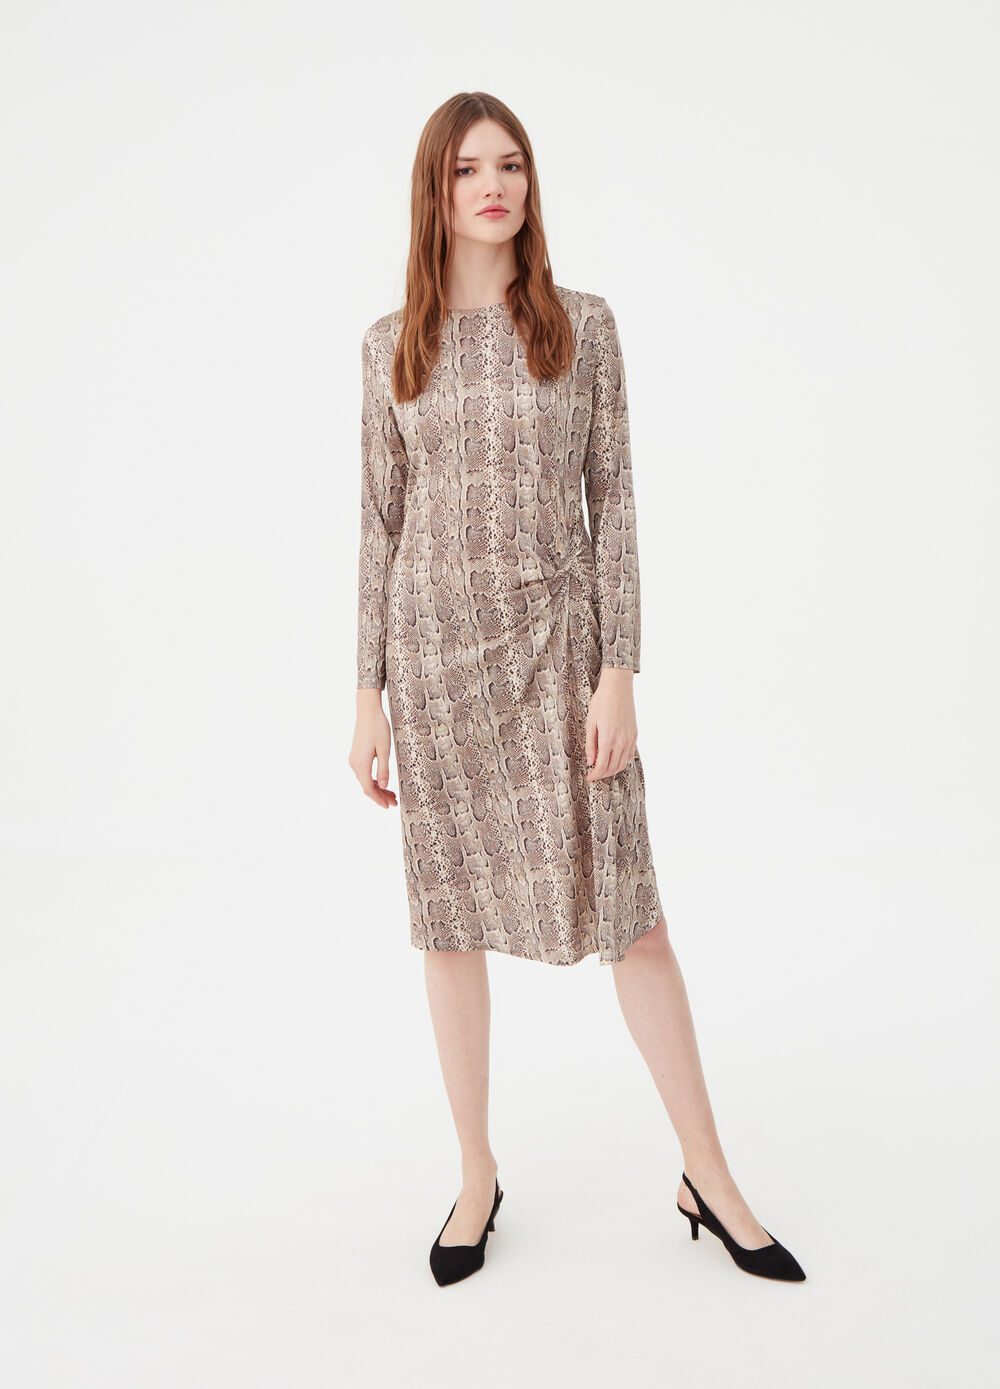 Long-sleeved dress with snakeskin print